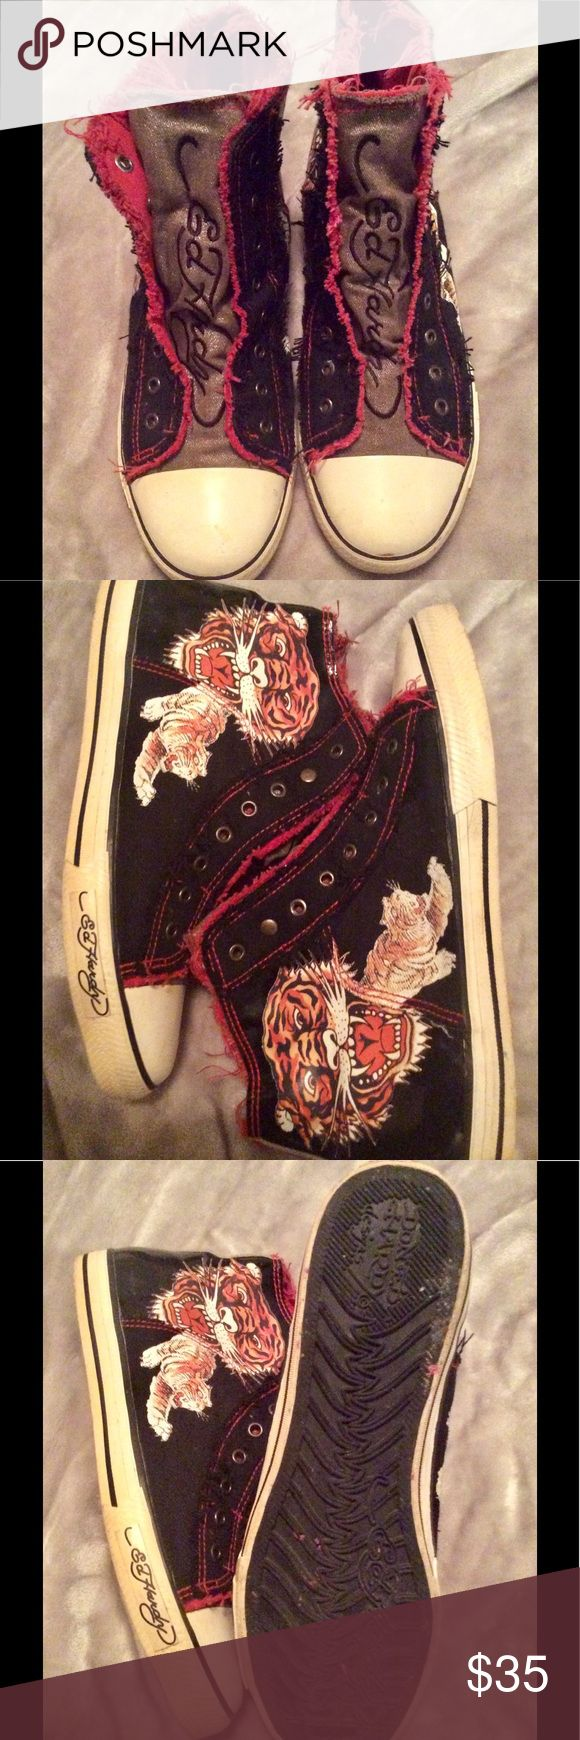 Hardly worn Don ED HARDY designs hi tops Absolutely great condition lace less Don Ed Hardy Chuck Taylor style hi tops. Ed Hardy Shoes Athletic Shoes